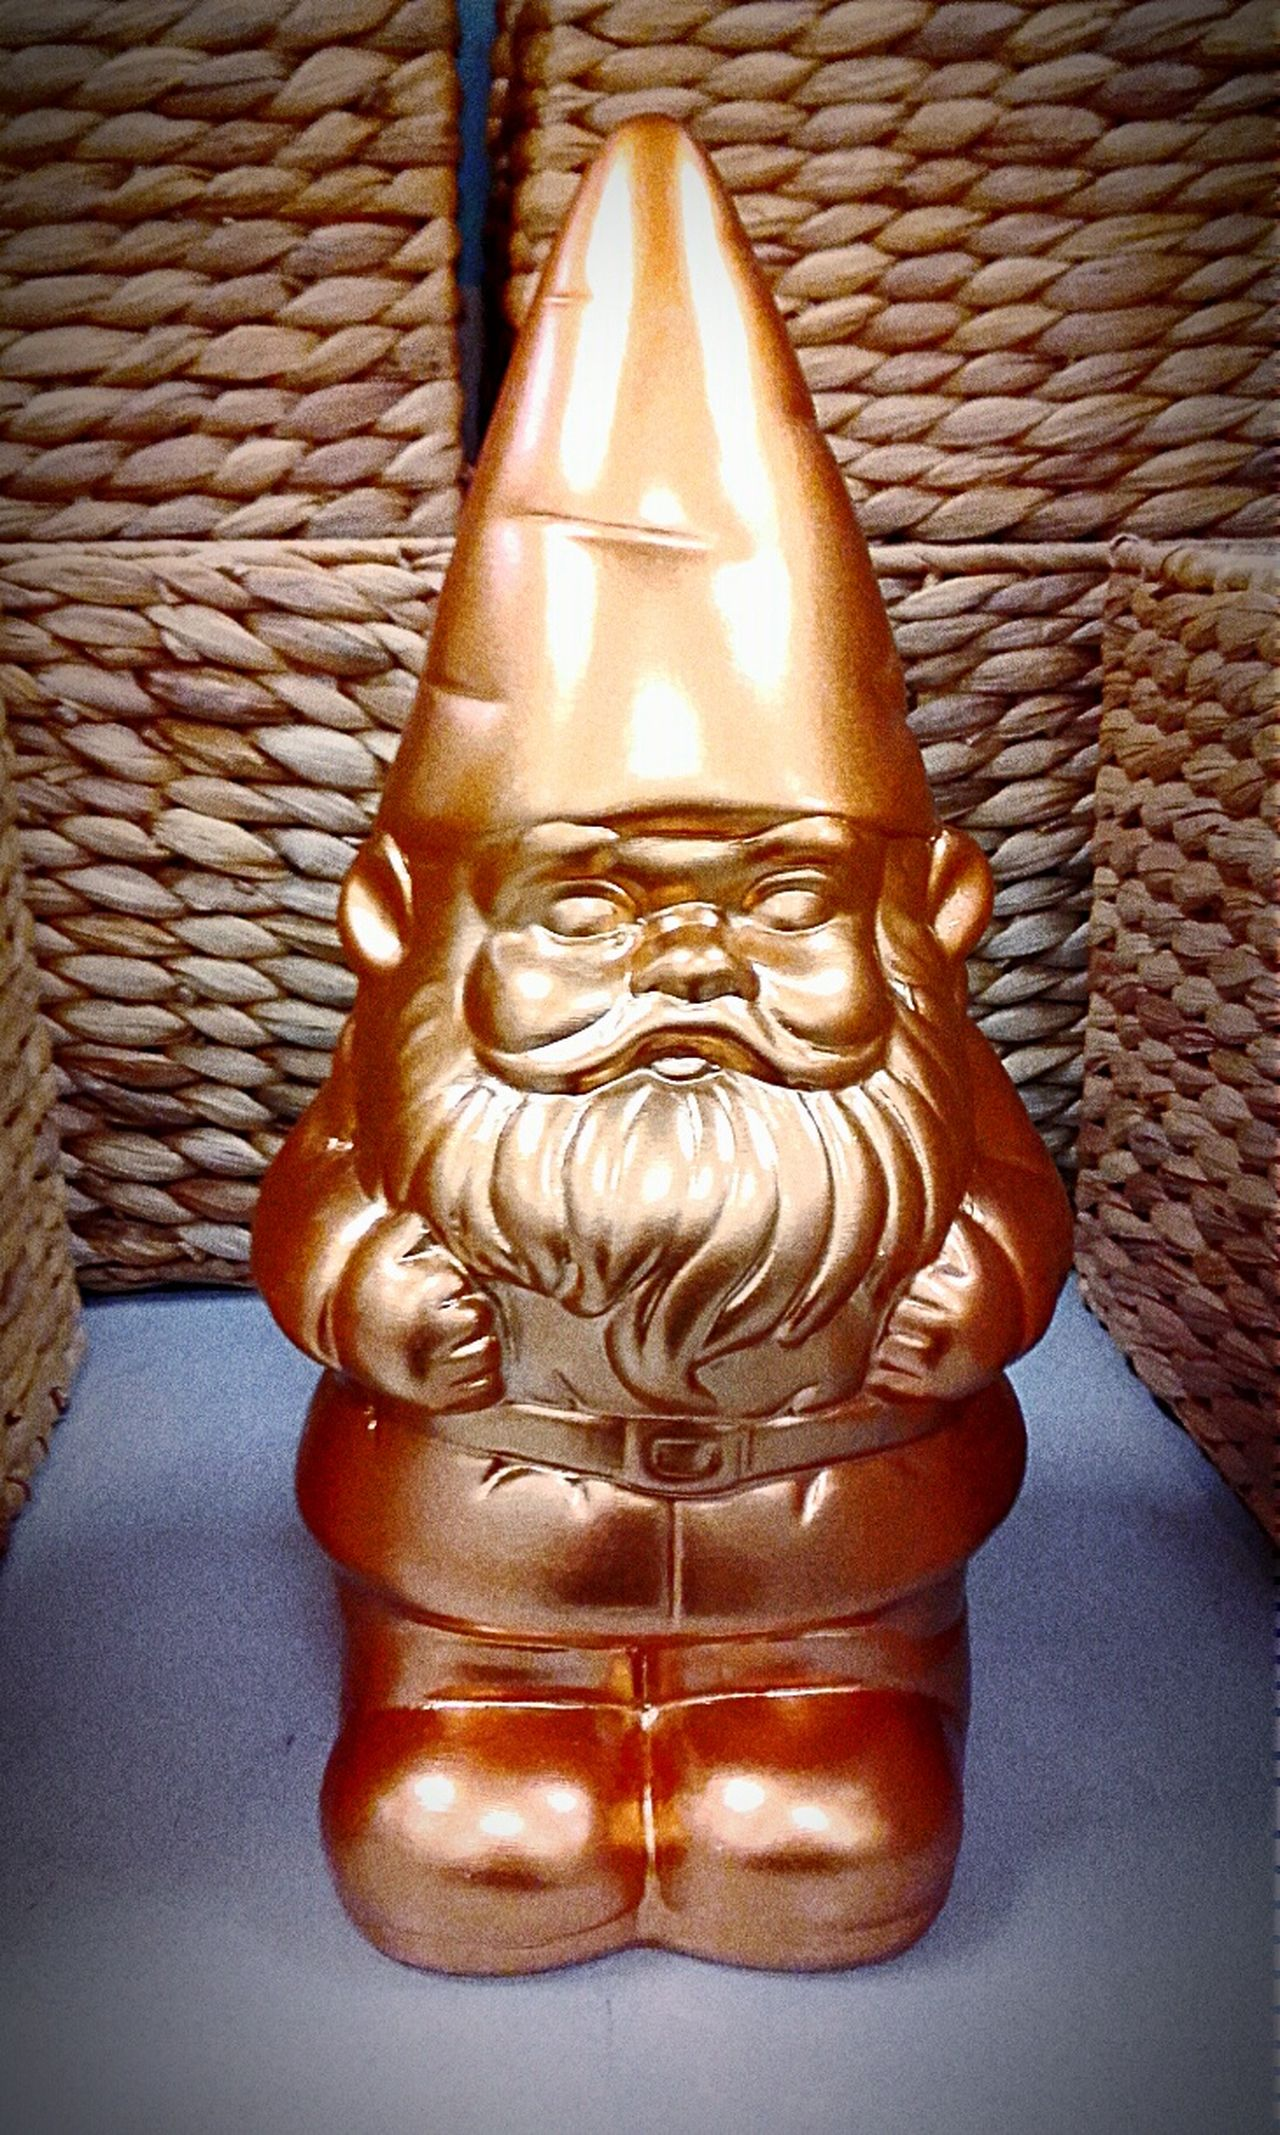 Gnomeporn Gnomes Gnome Gnomeoftheday Gnomesaremysterious Gnomesiveknown Gnomes Of EyeEm Coppercolor Check This Out Little Man   Copper Color Littleman Copper Colour Coppercolour Coppergnome Statuettes Copper Gnome Coppercolorgnome Coppercolored Copper Colored Coppercolour Coppercoloredgnome Copper Colored Gnome Copper  Statuette